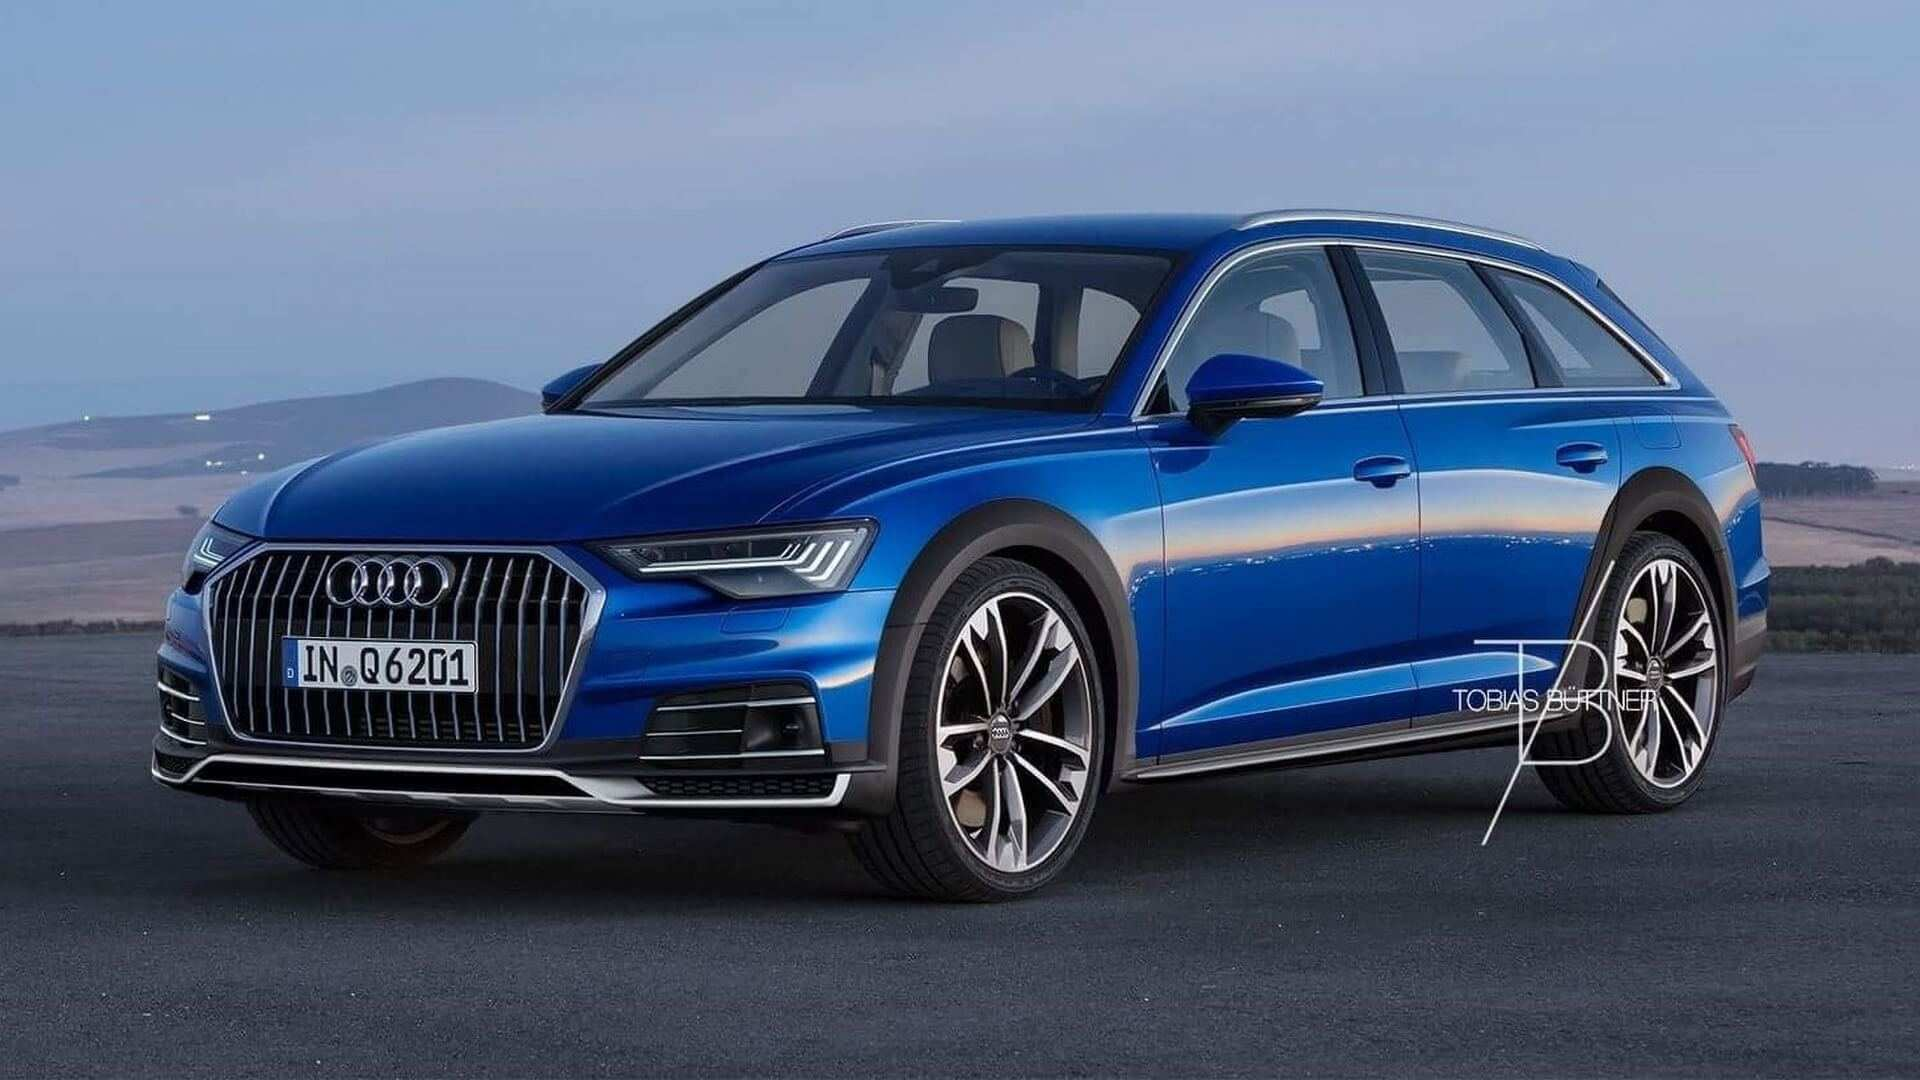 48 New 2020 Audi A6 2018 History for 2020 Audi A6 2018